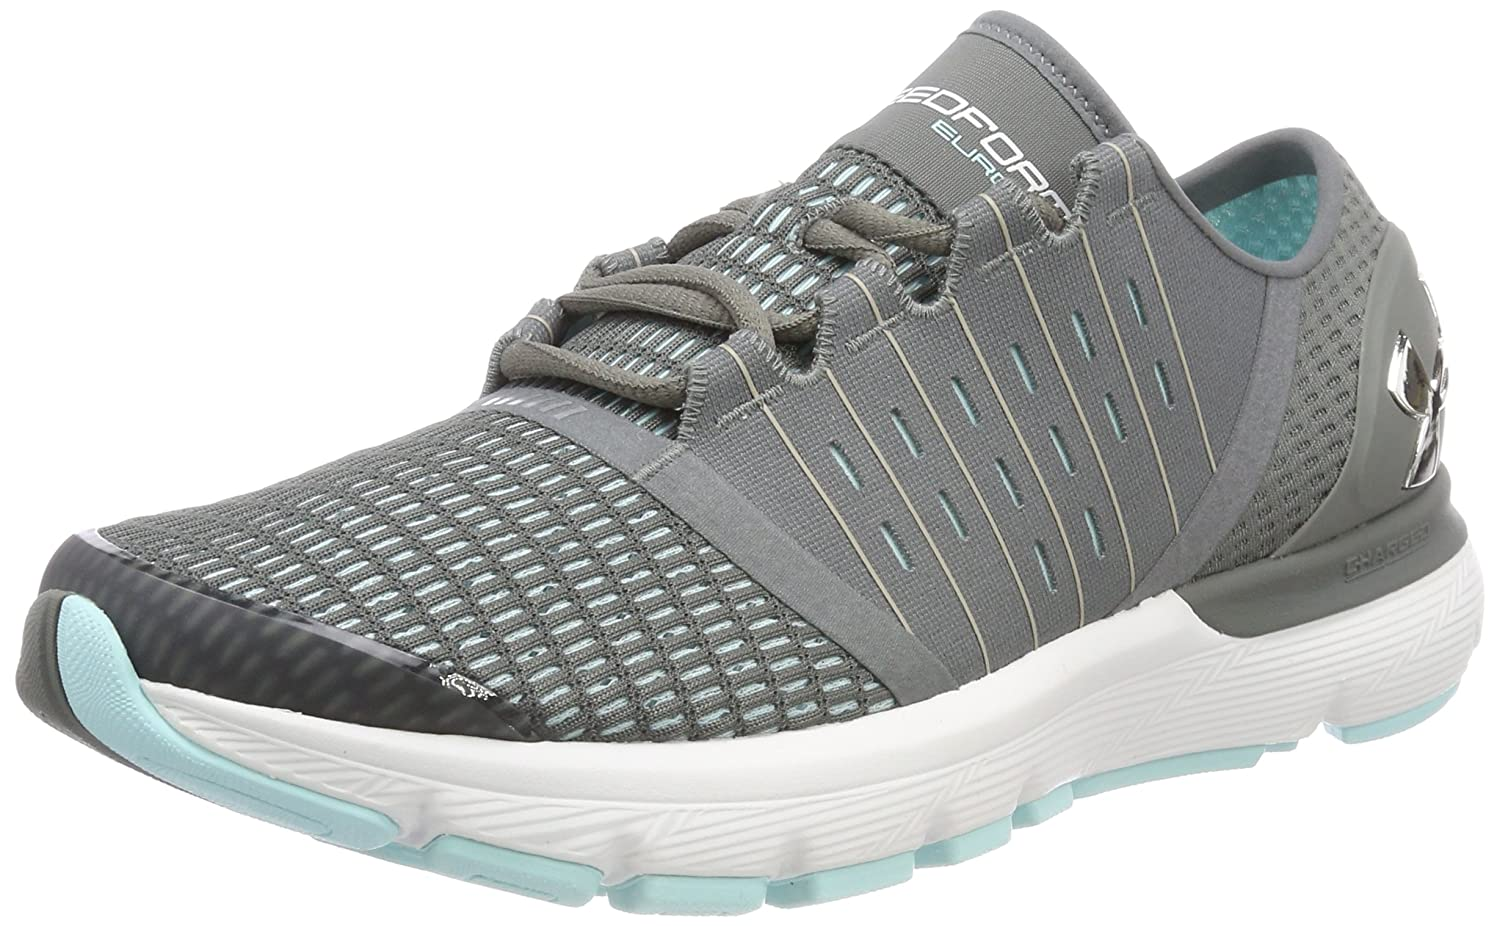 Under Armour Women's Speedform Europa Running Shoes 1285482